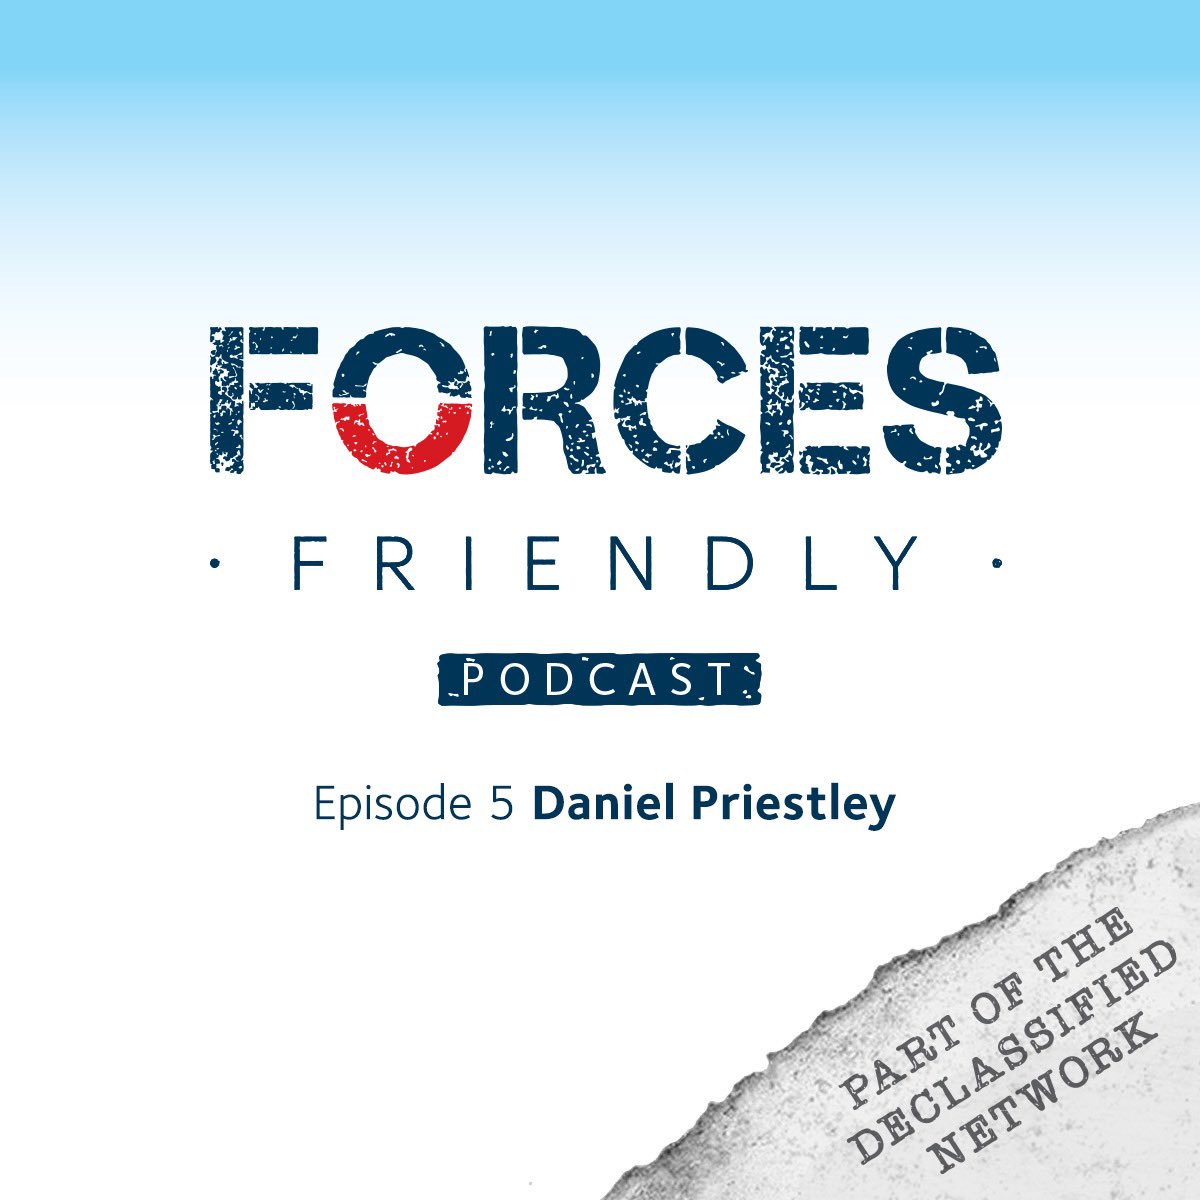 Episode 5 - Daniel Priestley - We talk about starting out in business, influence, assets, pressure, role models and the UN Global goals - podcasts.apple.com/gb/podcast/for… audioboom.com/posts/7350269-… If you would like to attend his next event - unique link below👇🏼 my.dent.global/uk/bkpi/